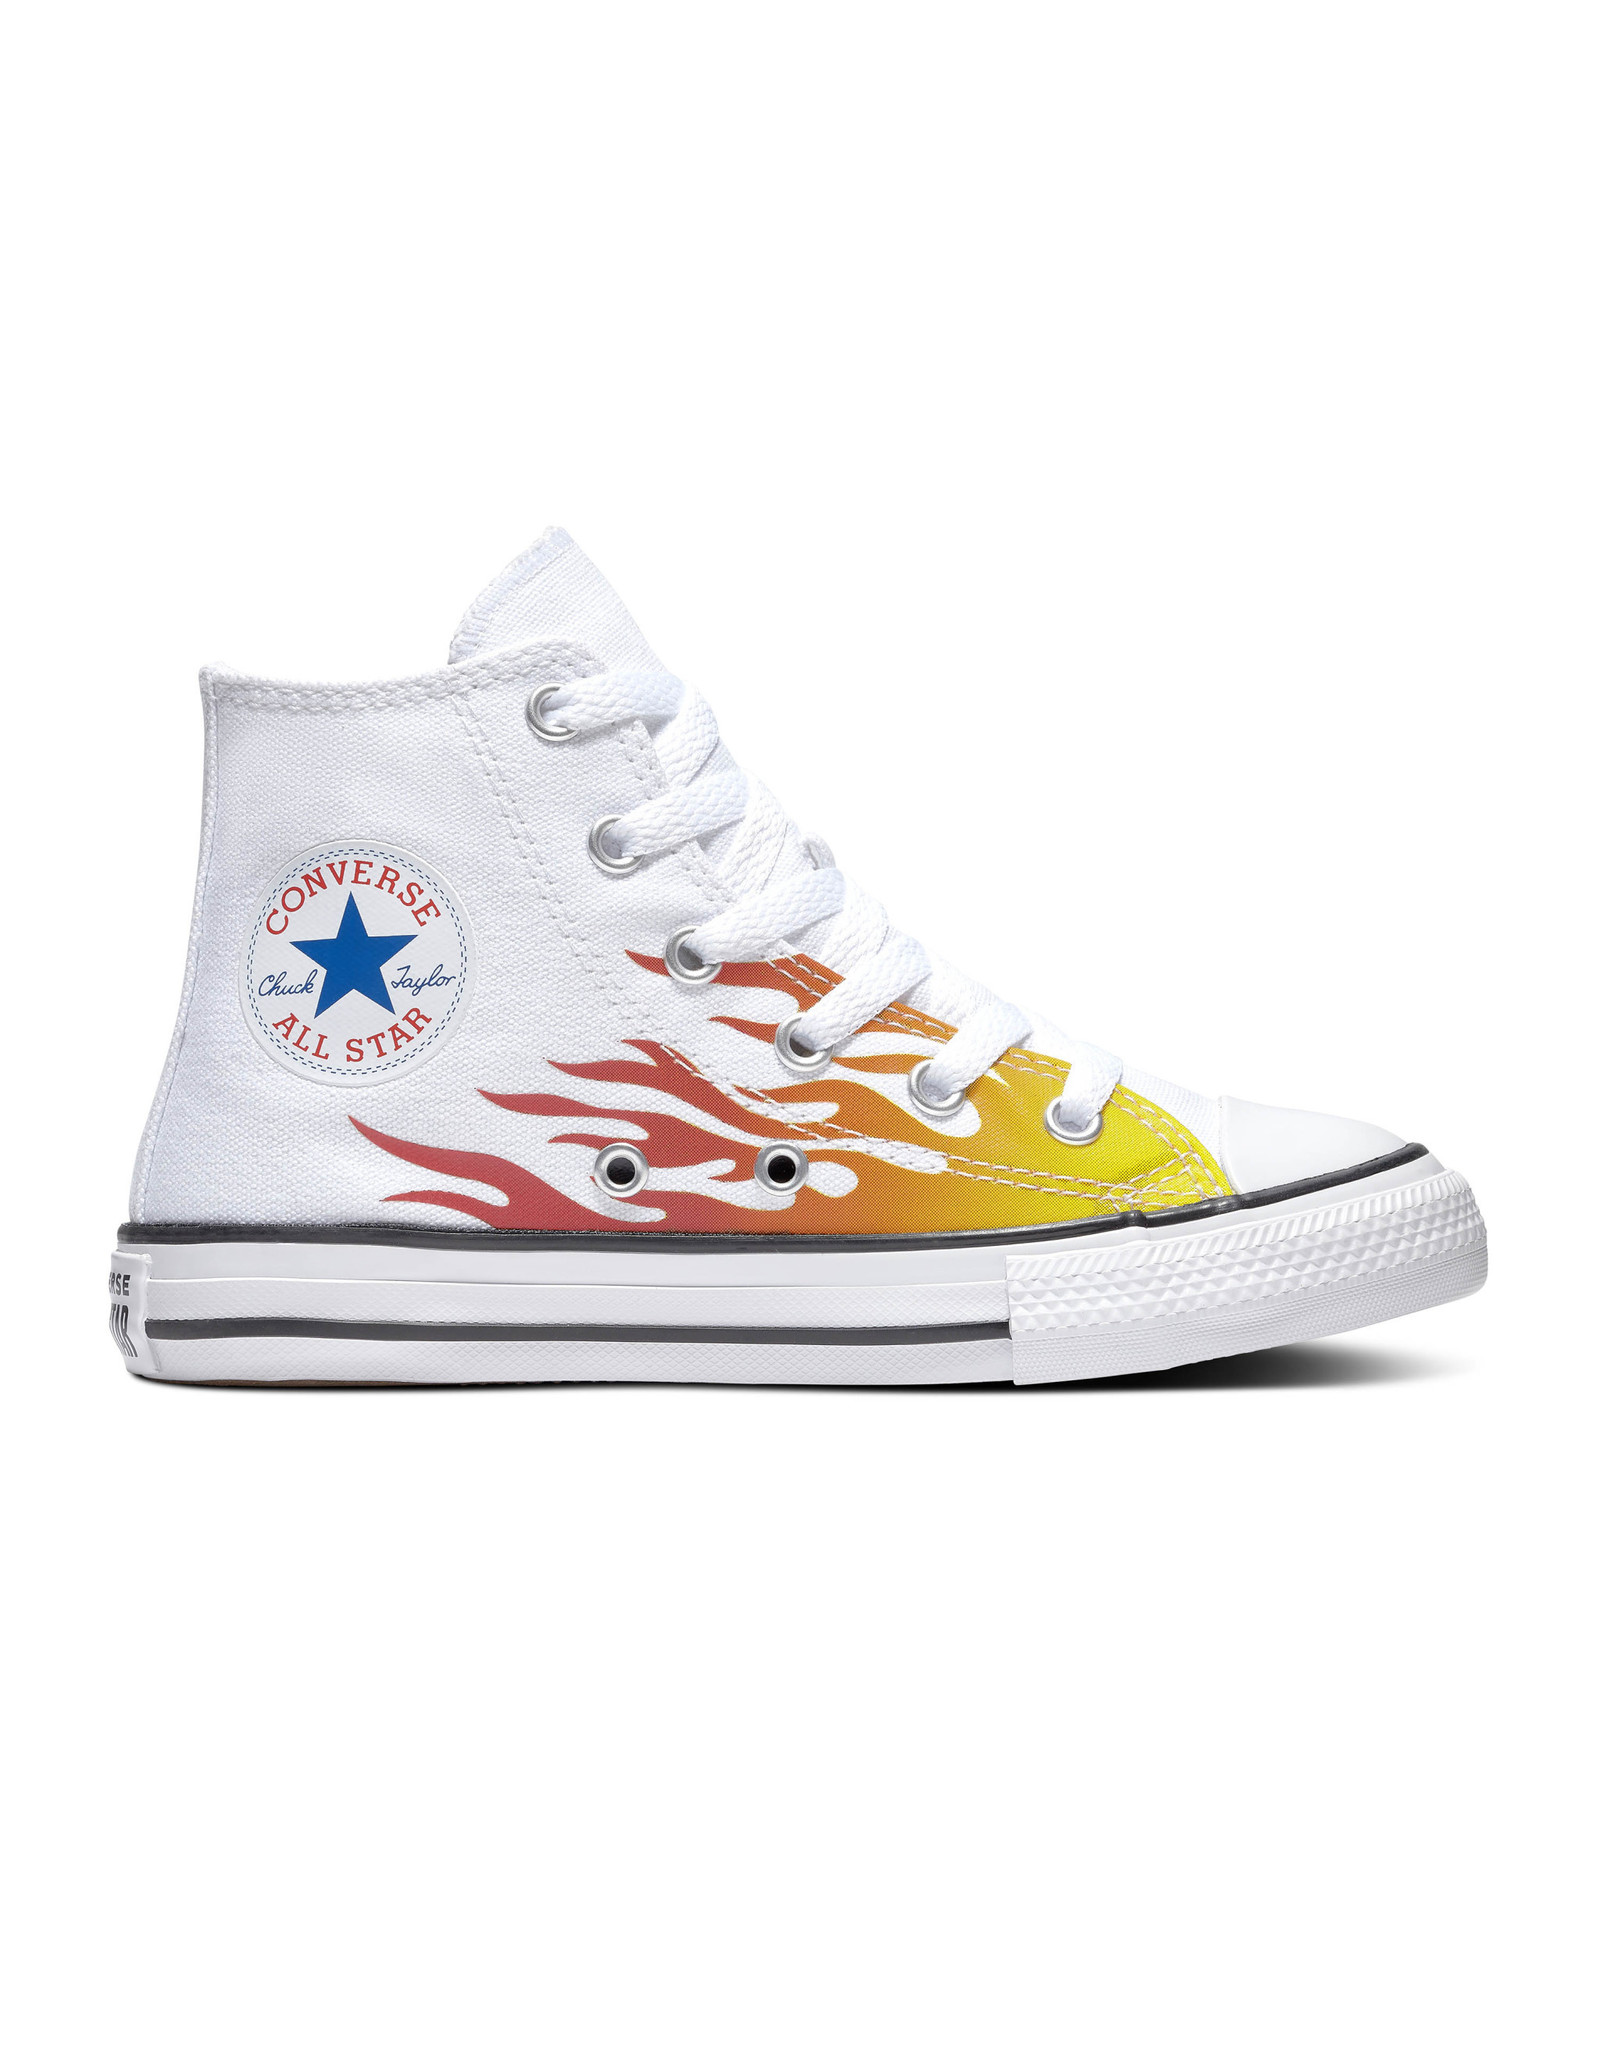 CONVERSE CHUCK TAYLOR ALL STAR HI WHITE/ENAMEL RED/FRESH YELLOW CZFLAW-366196C